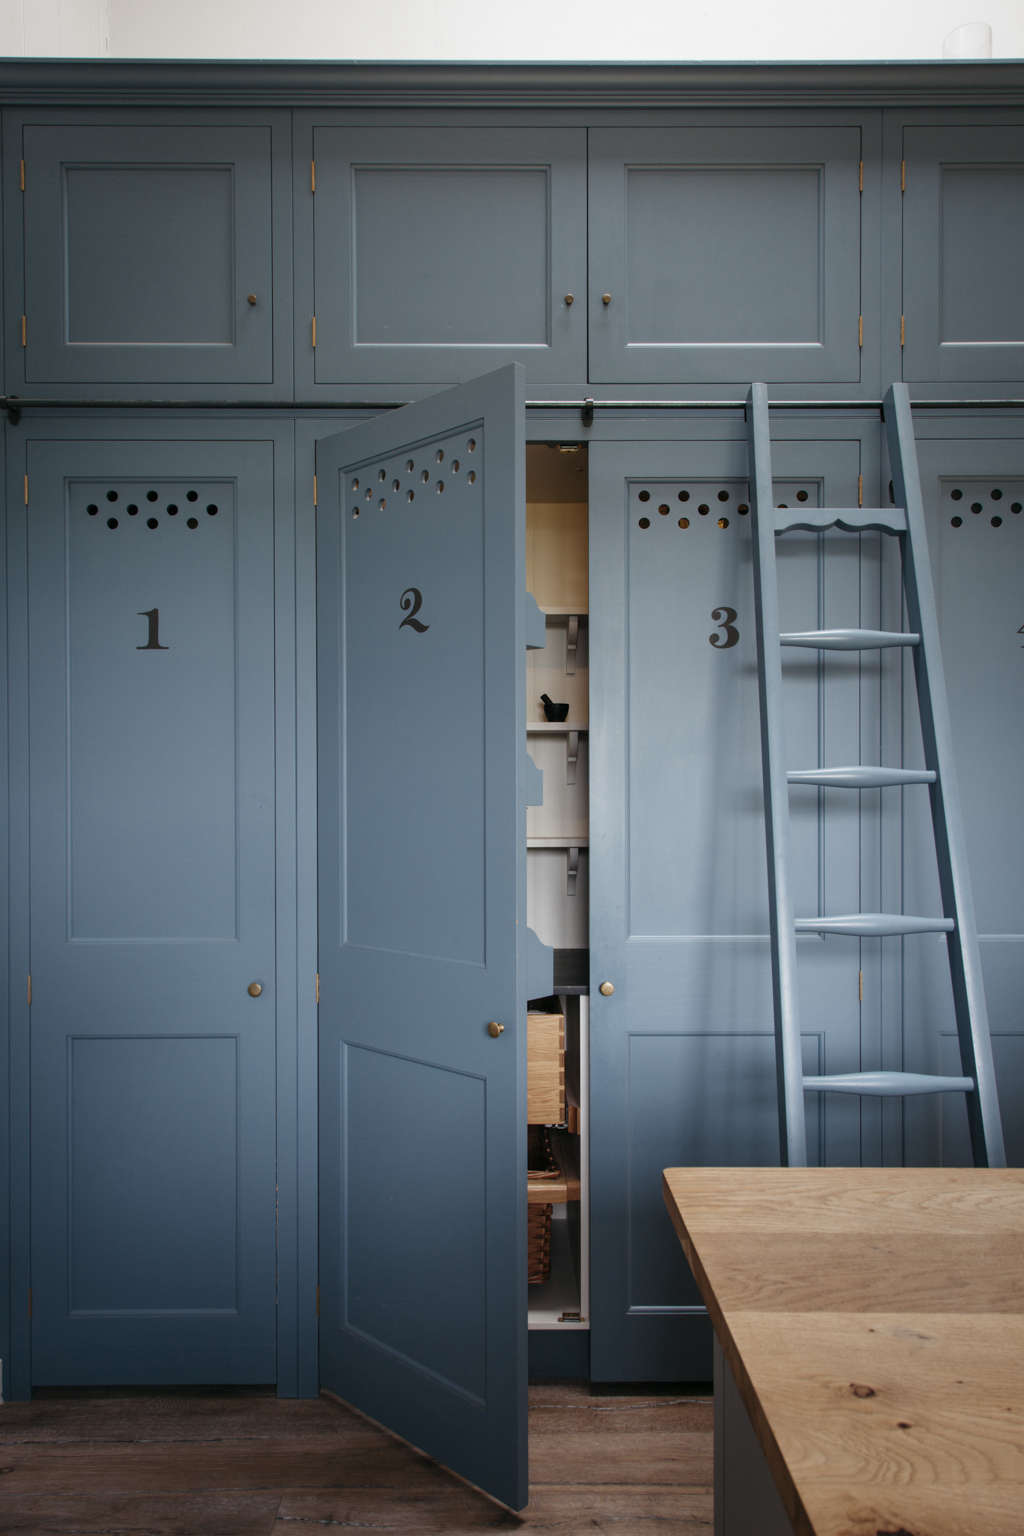 Numbered kitchen cabinets with ventilation holes and a rolling ladder in a Dorset farmhouse kitchen by Plain English